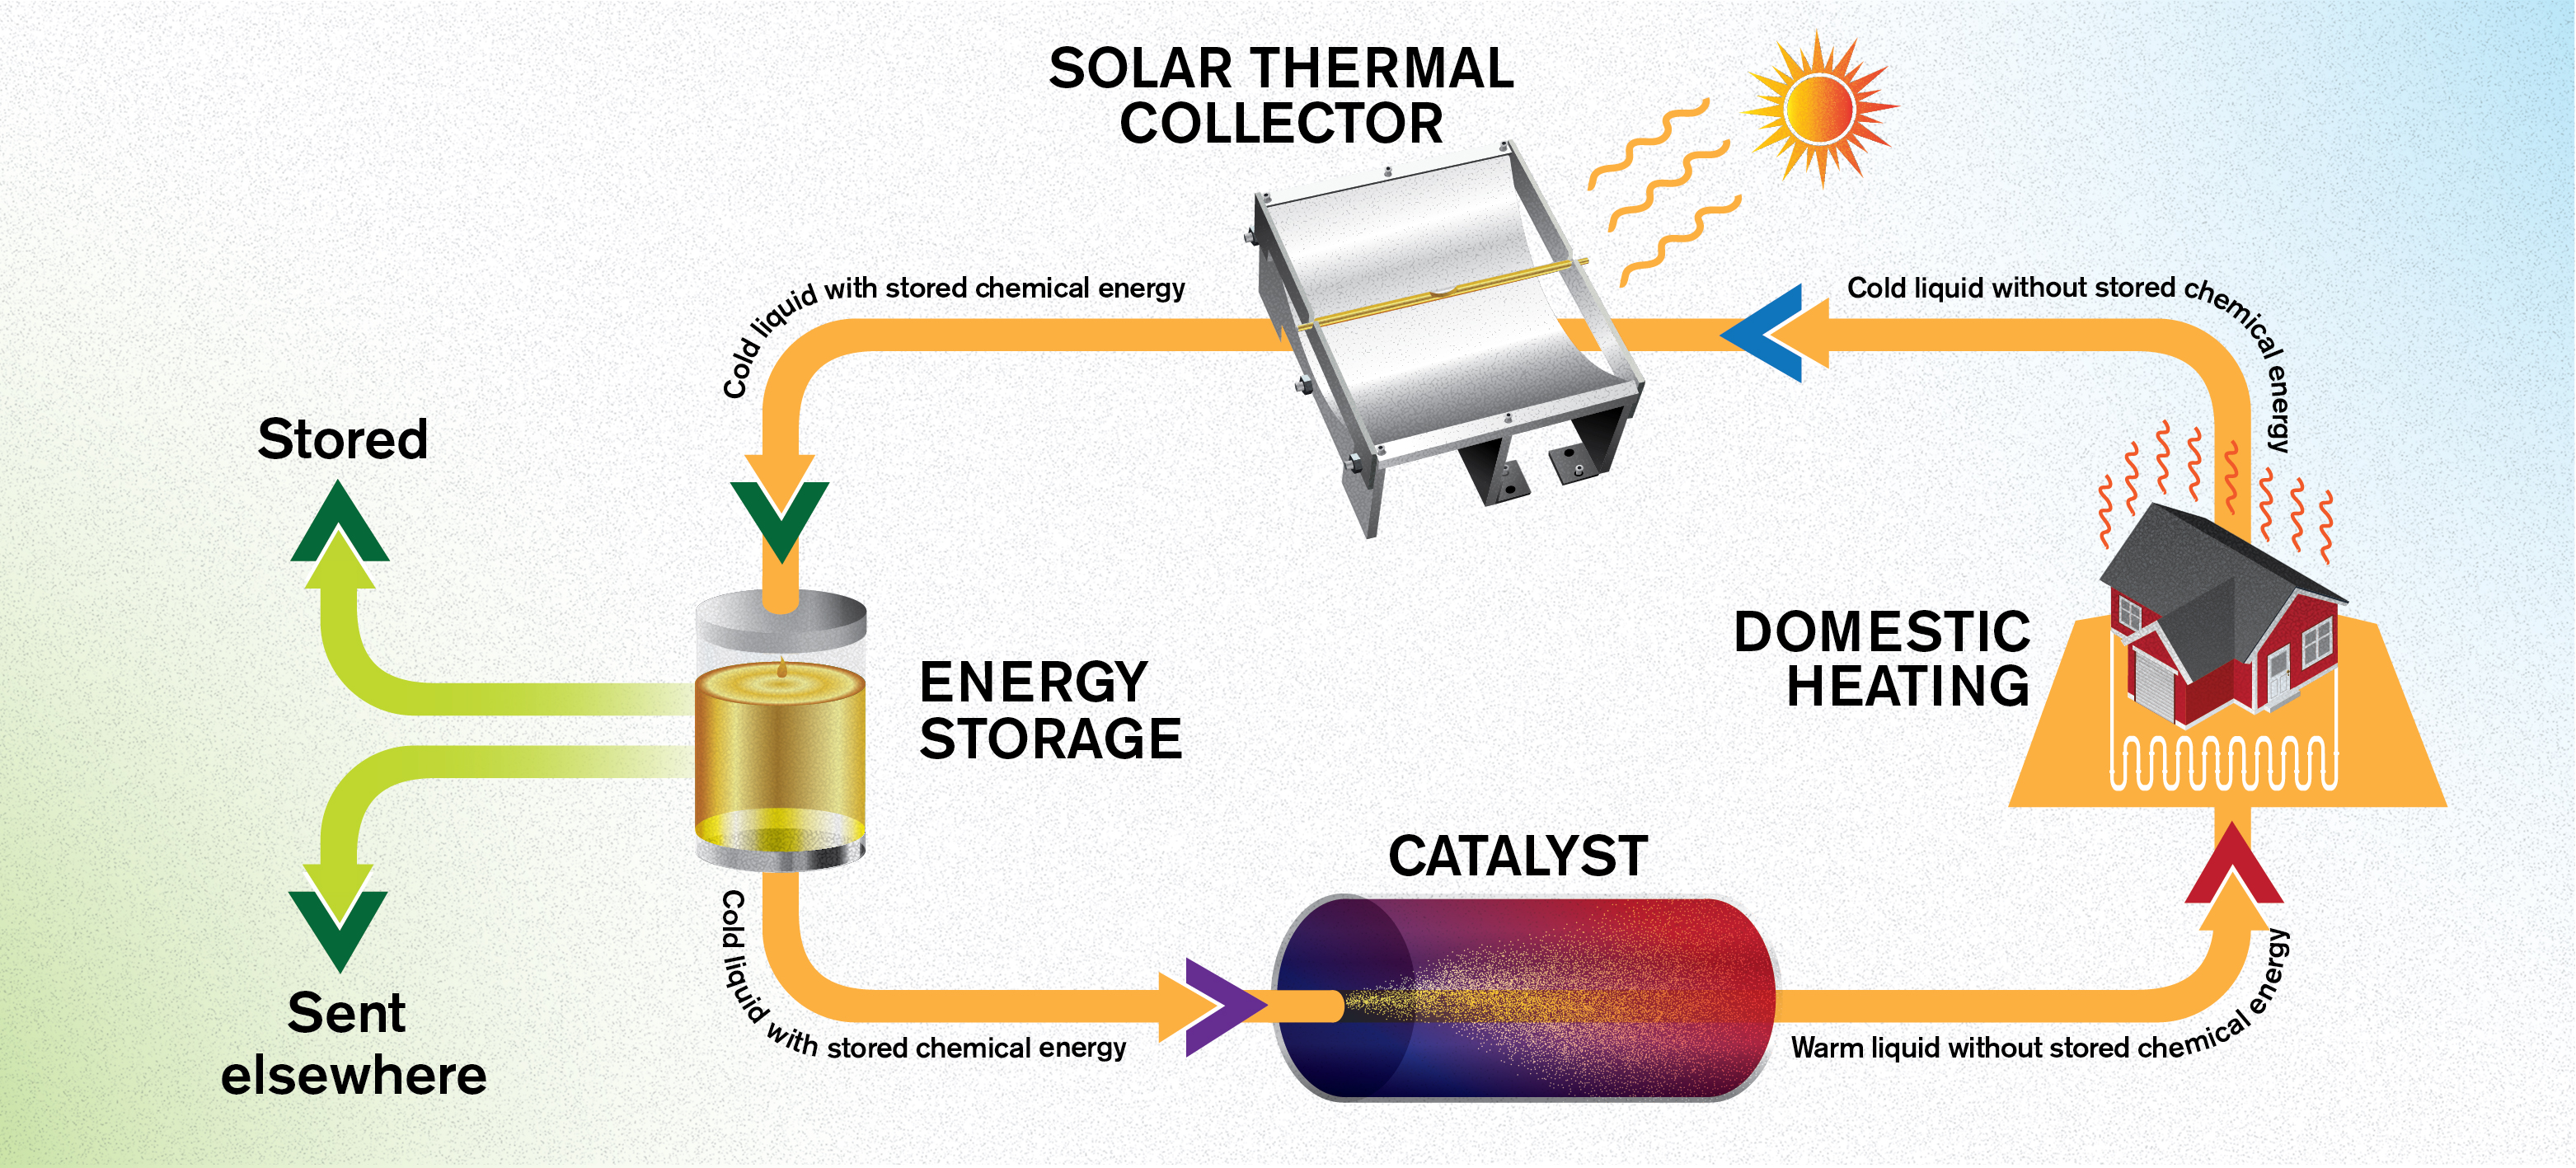 Emissions-free energy system saves heat from the summer sun for